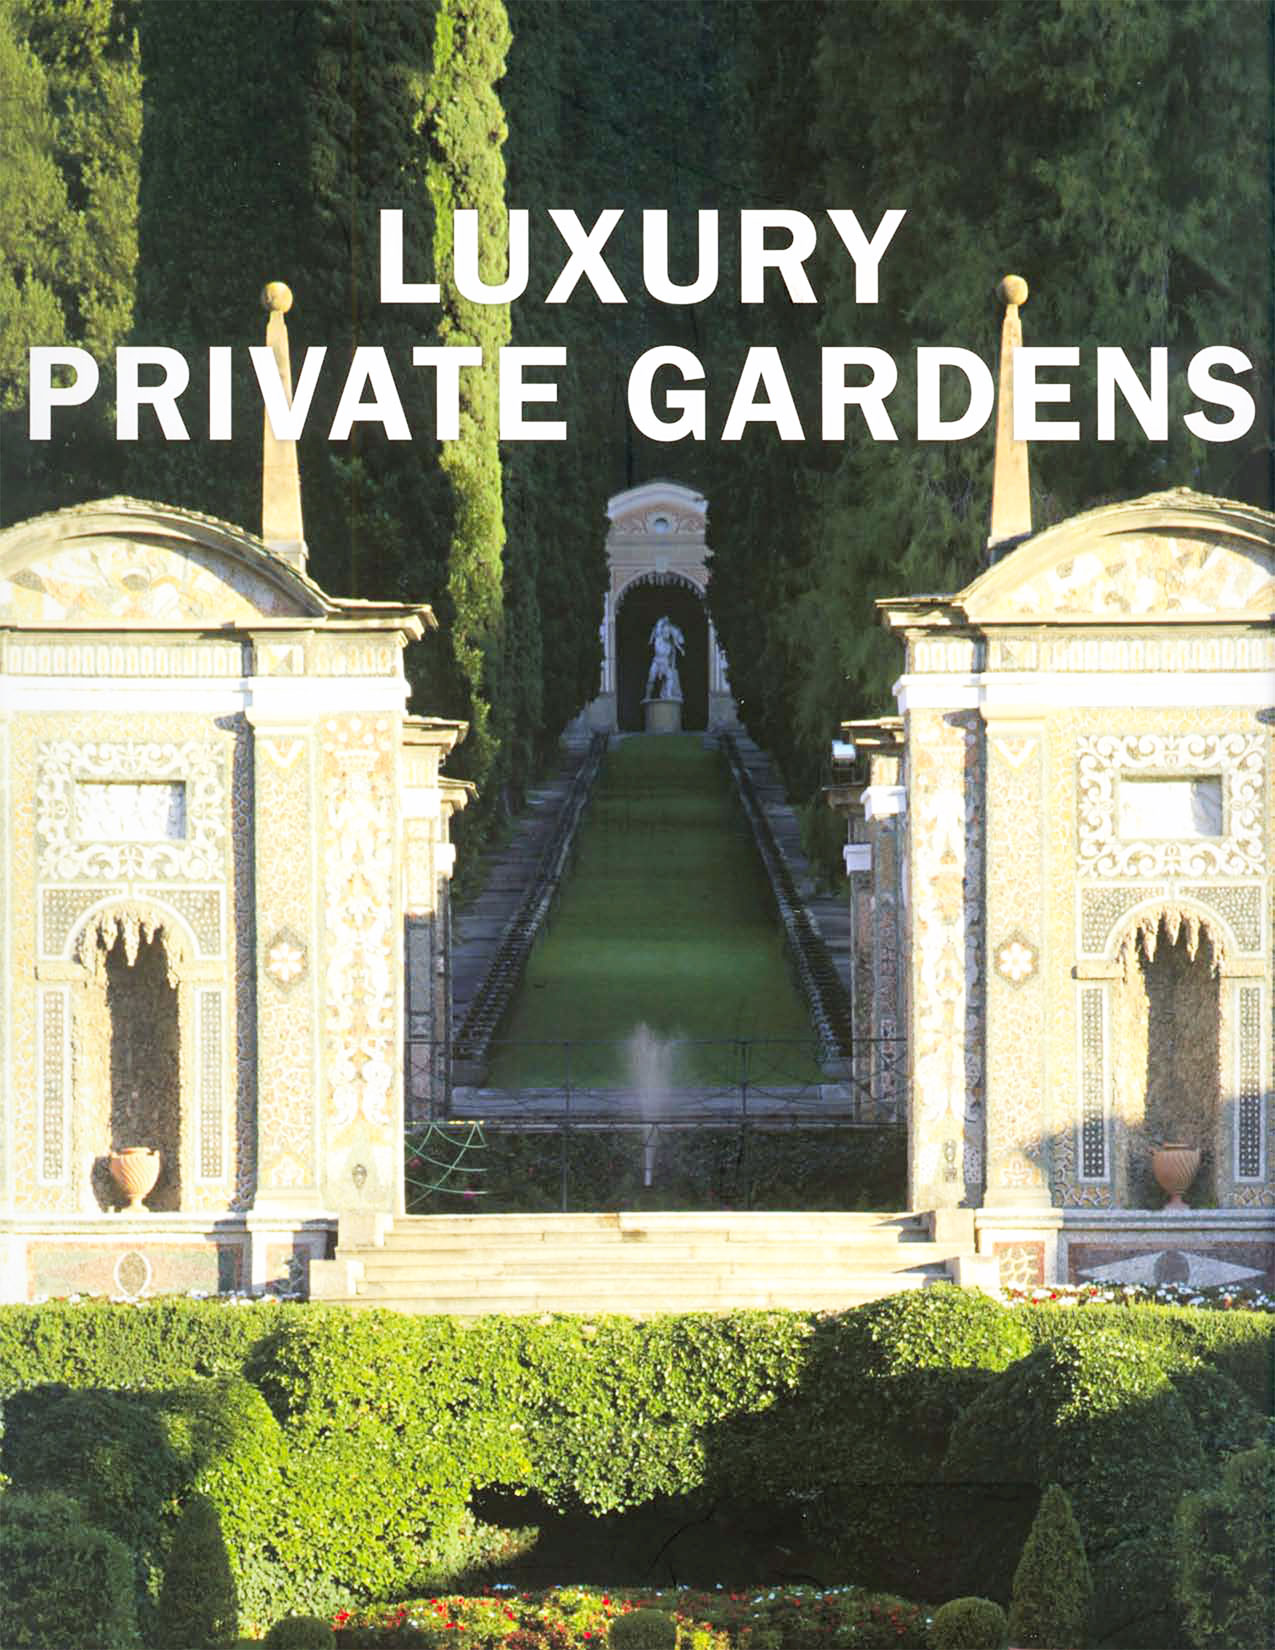 Luxury Private Gardens